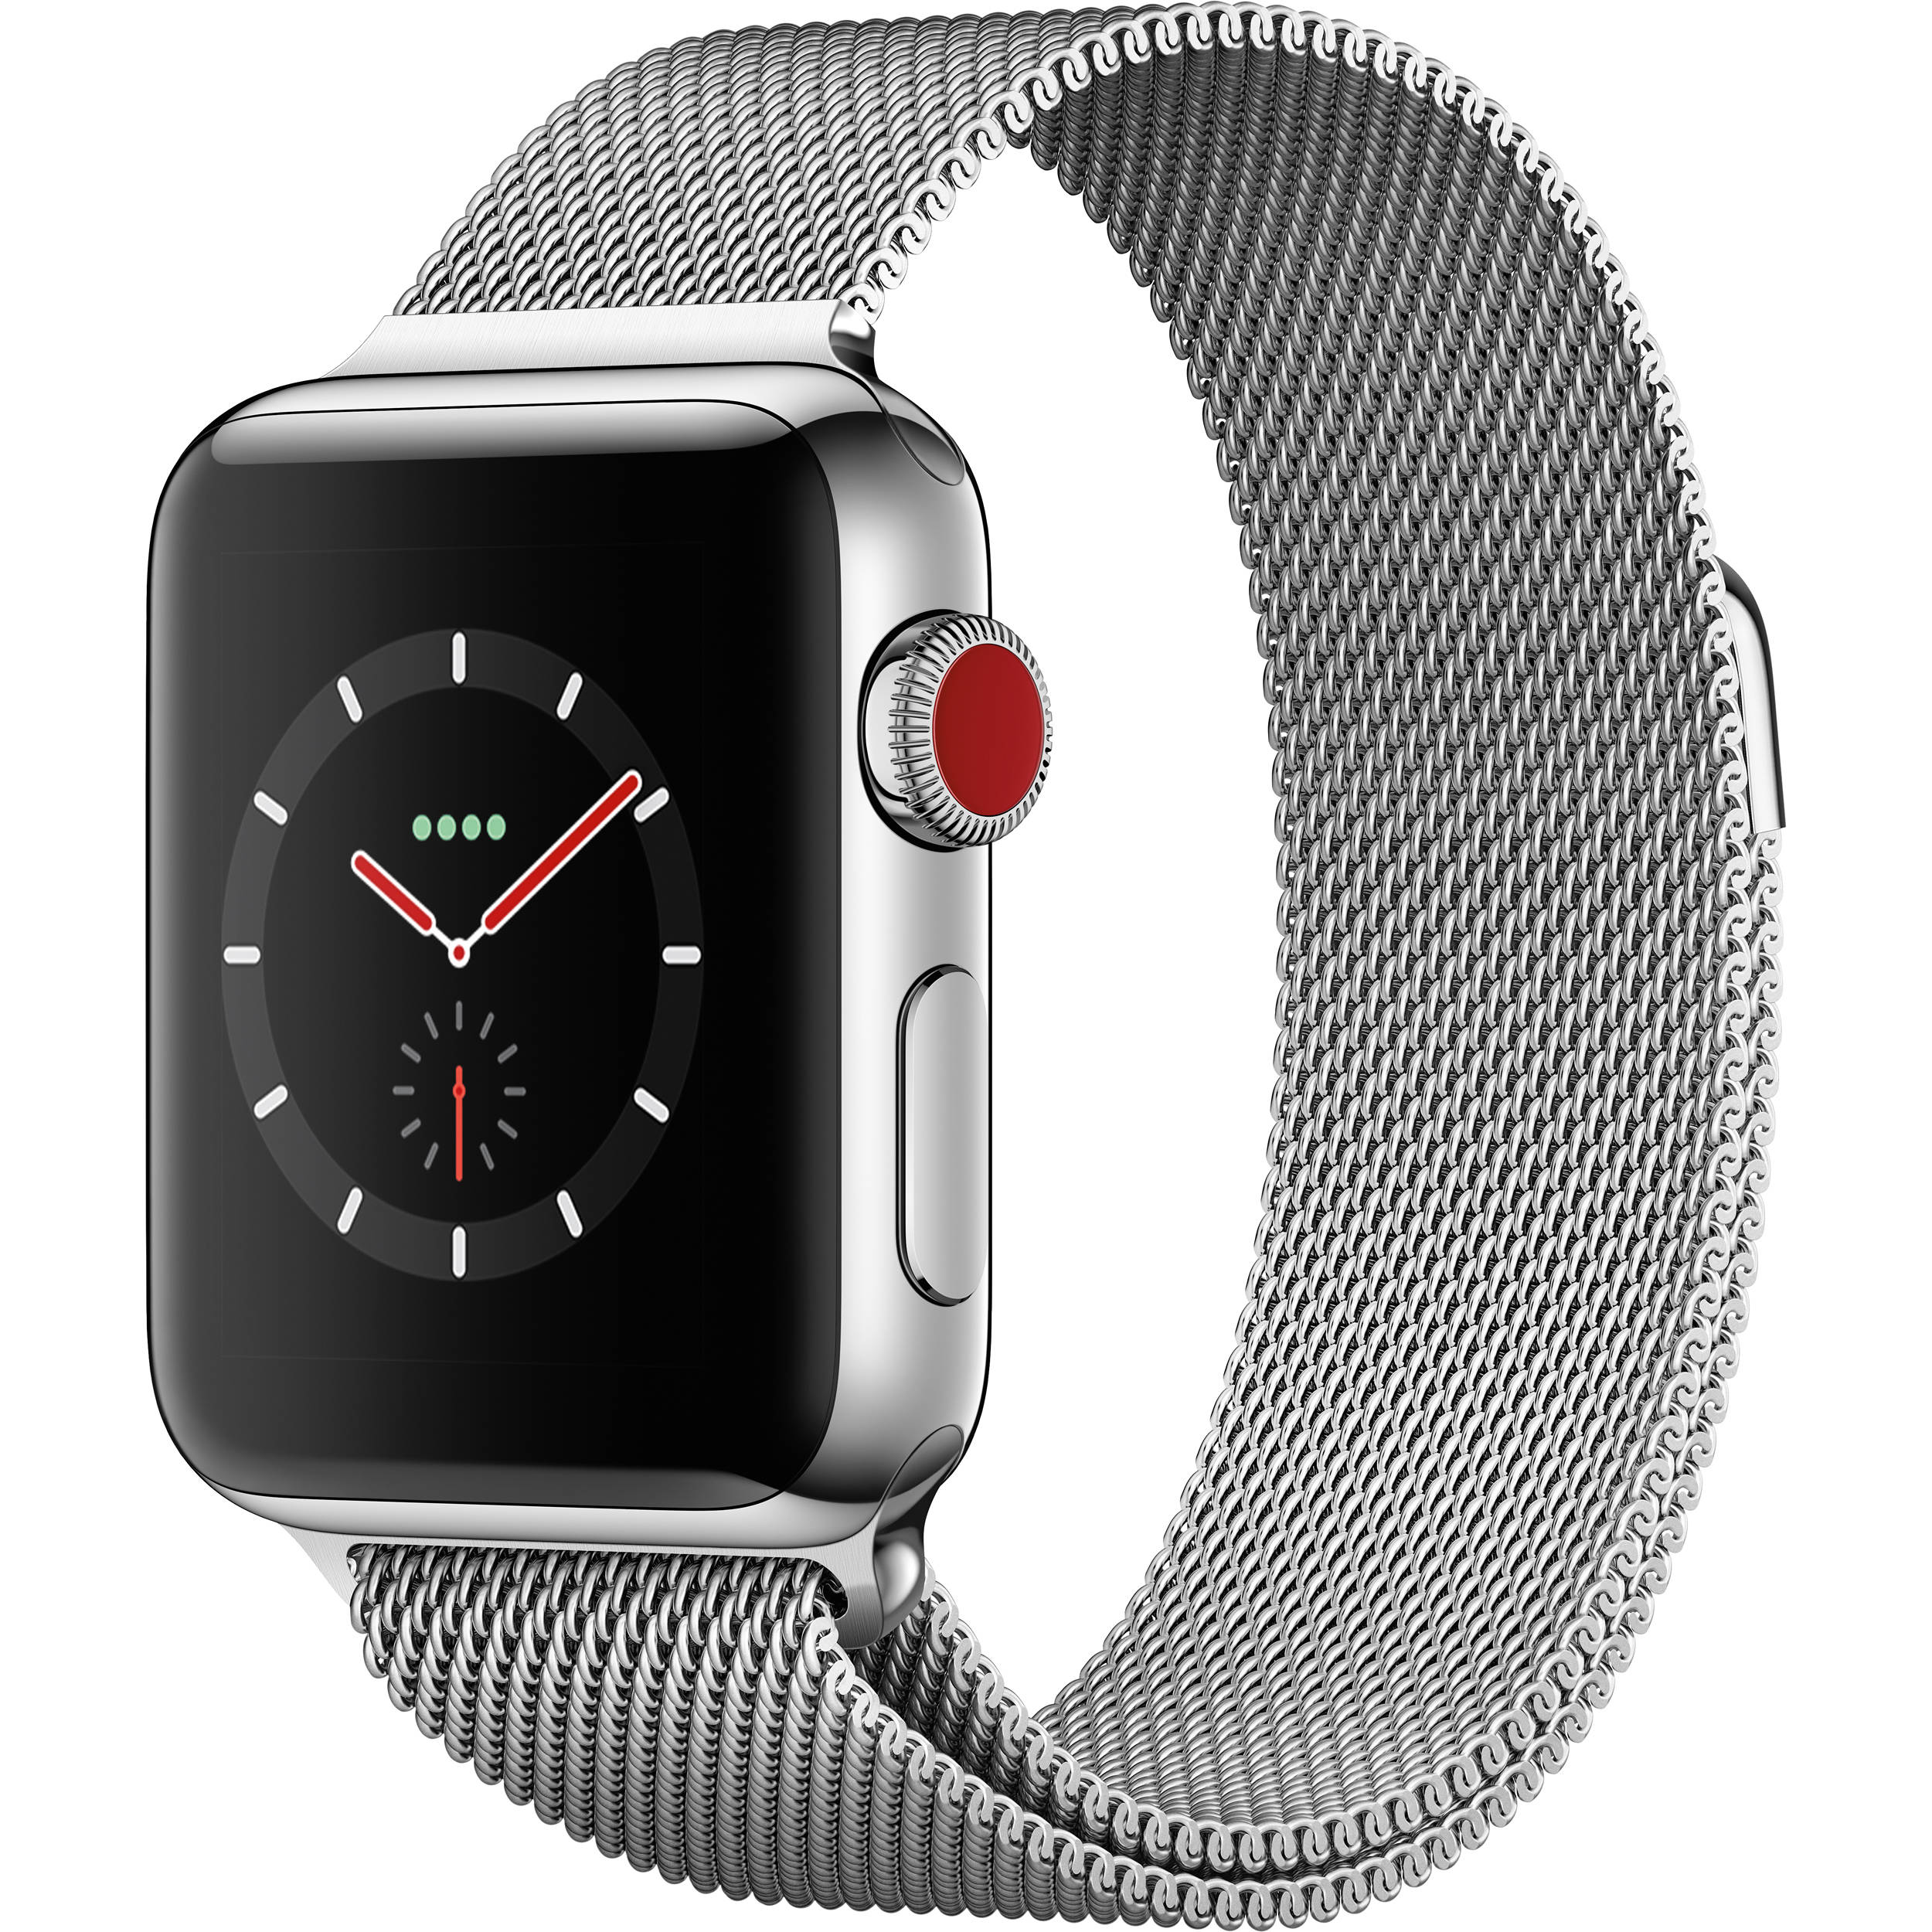 Apple Watch Series 3 38mm Smartwatch (GPS + Cellular, Stainless Steel Case,  Stainless Steel Milanese Loop)